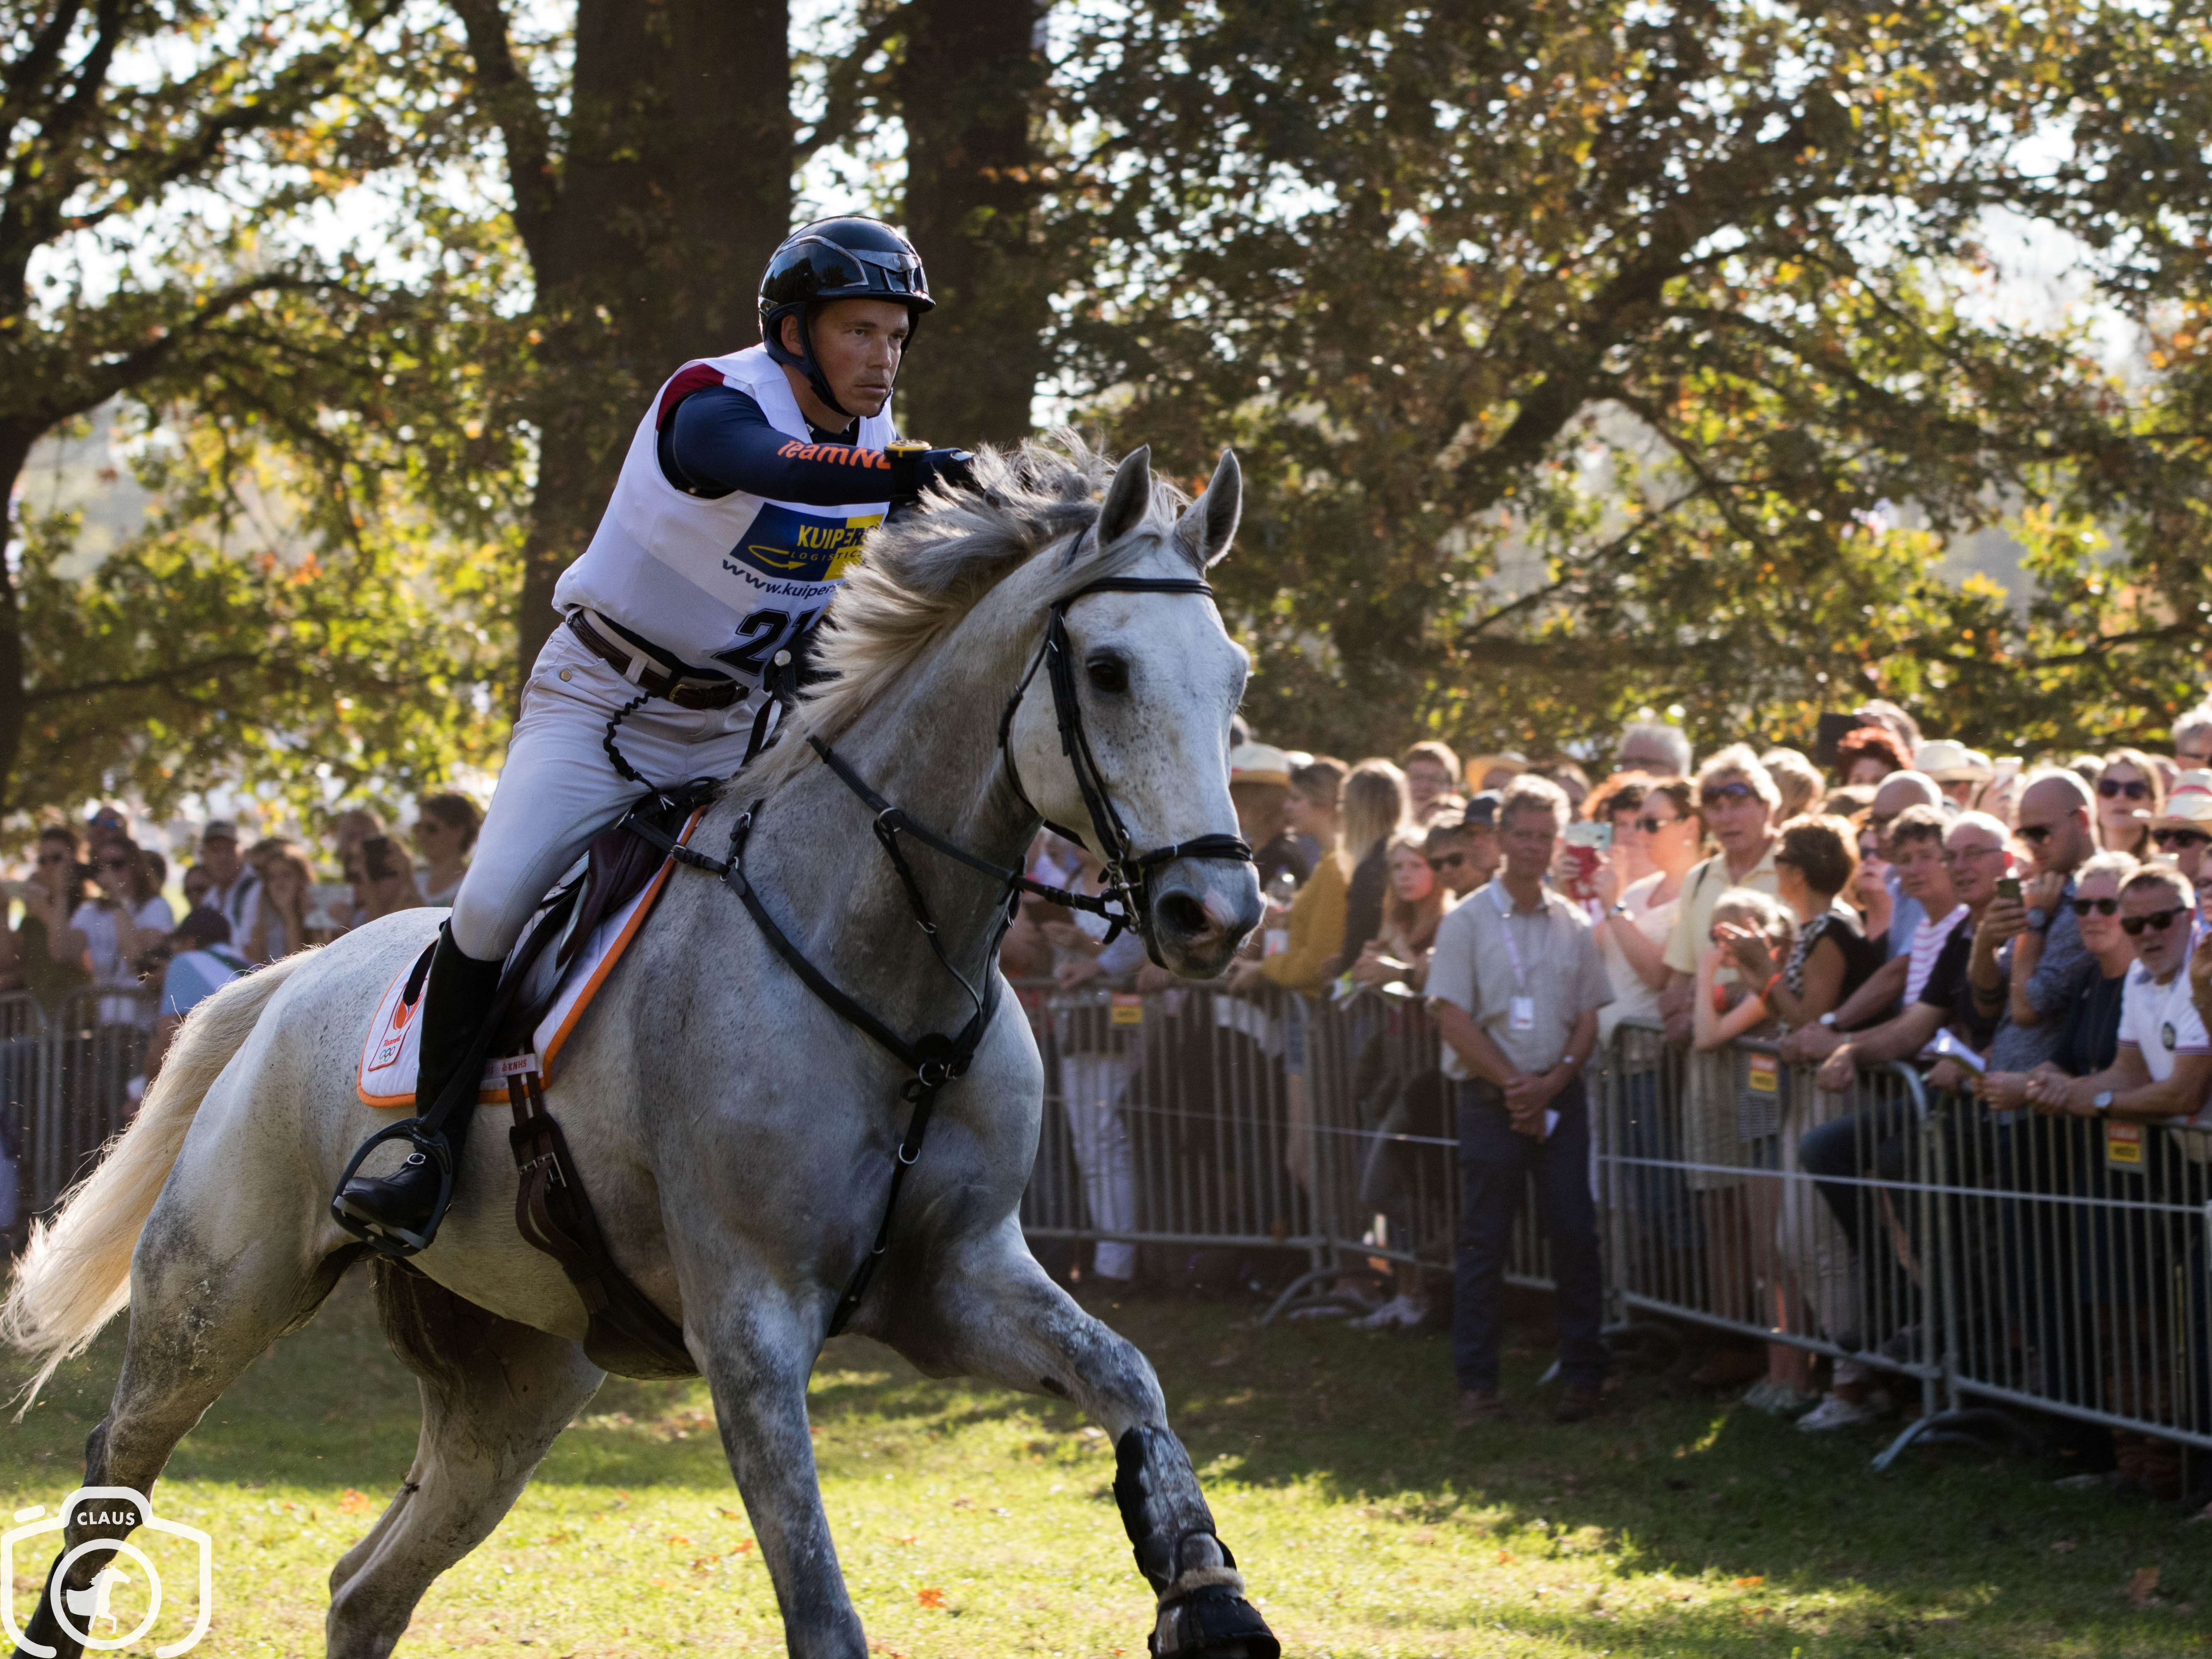 Military Boekelo: Tim Lips behoudt koppositie na cross country